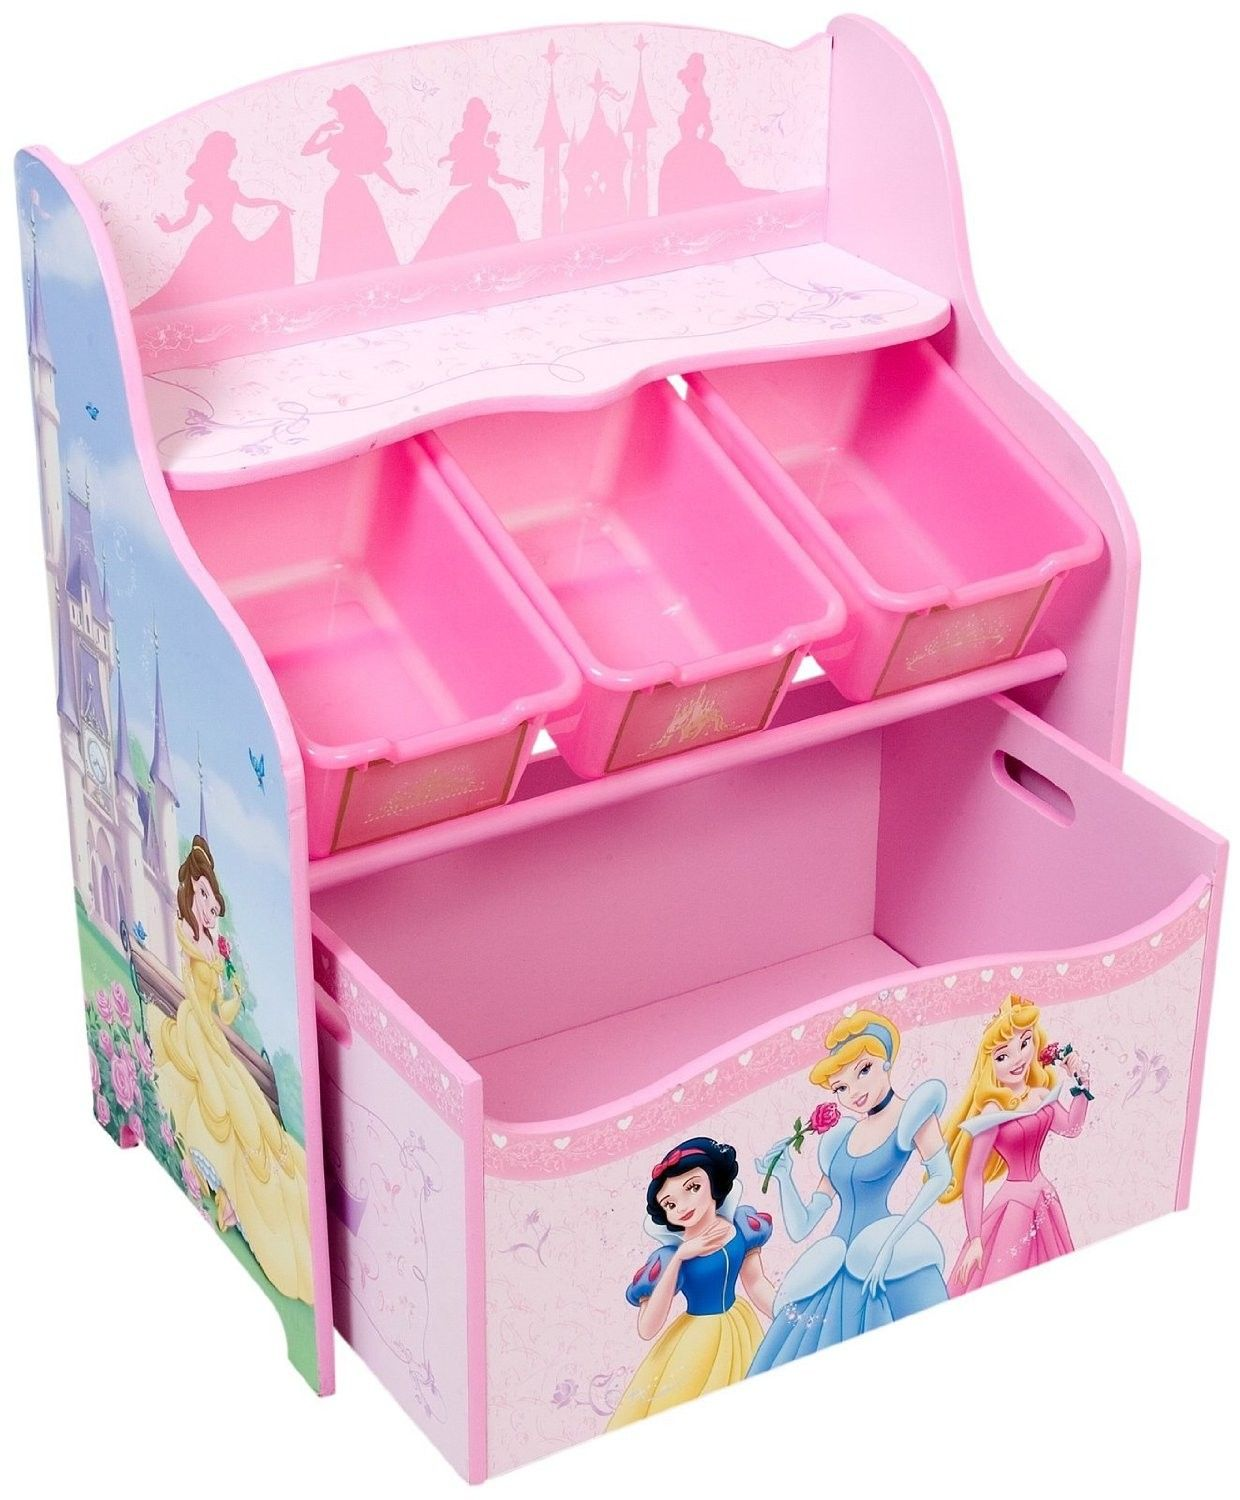 Disney Princess 3 Tier And 3 Bin Organizer With Roll Out Toy Box